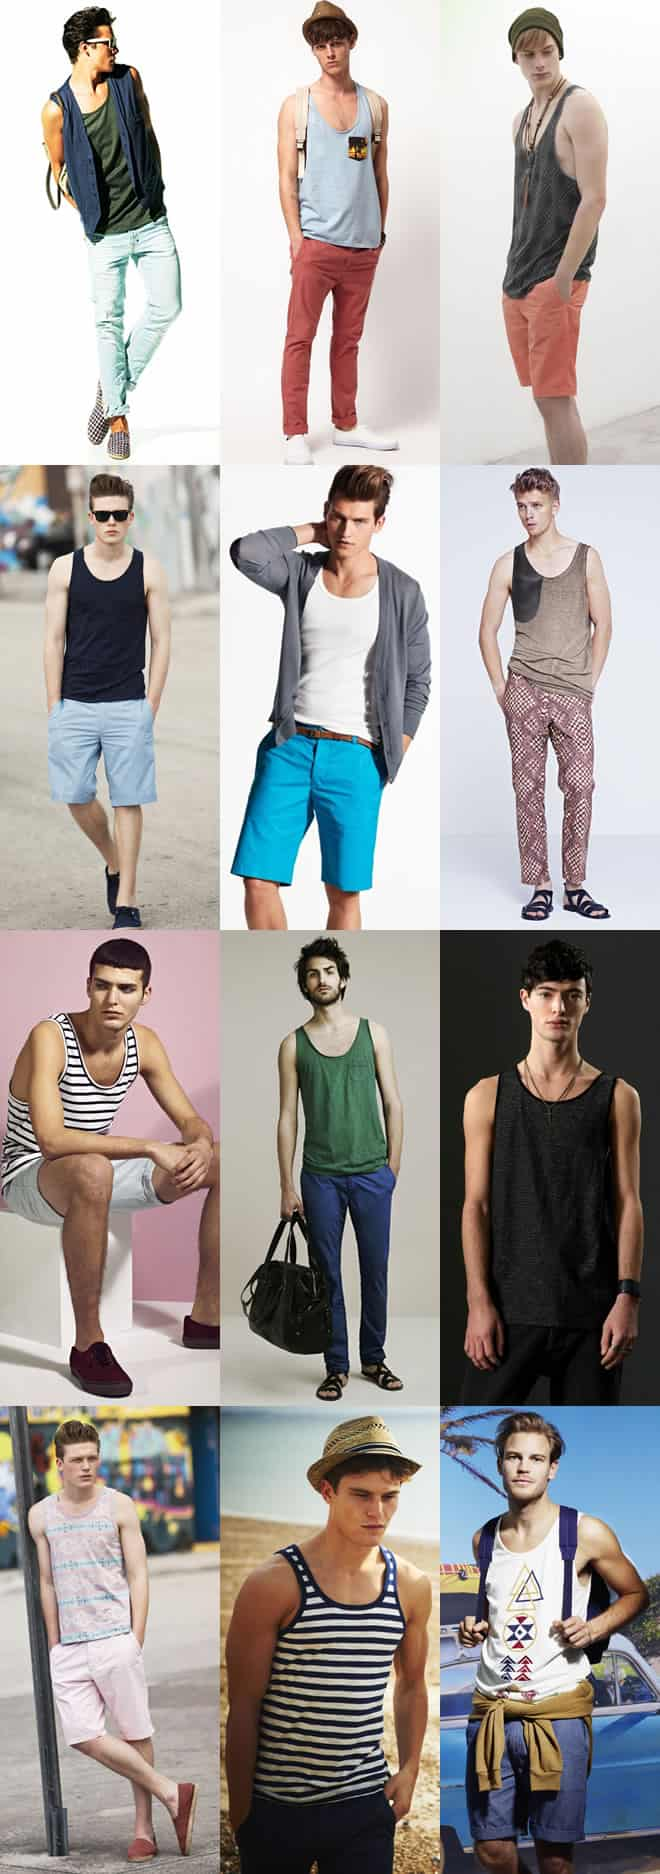 Men's Vests Lookbook